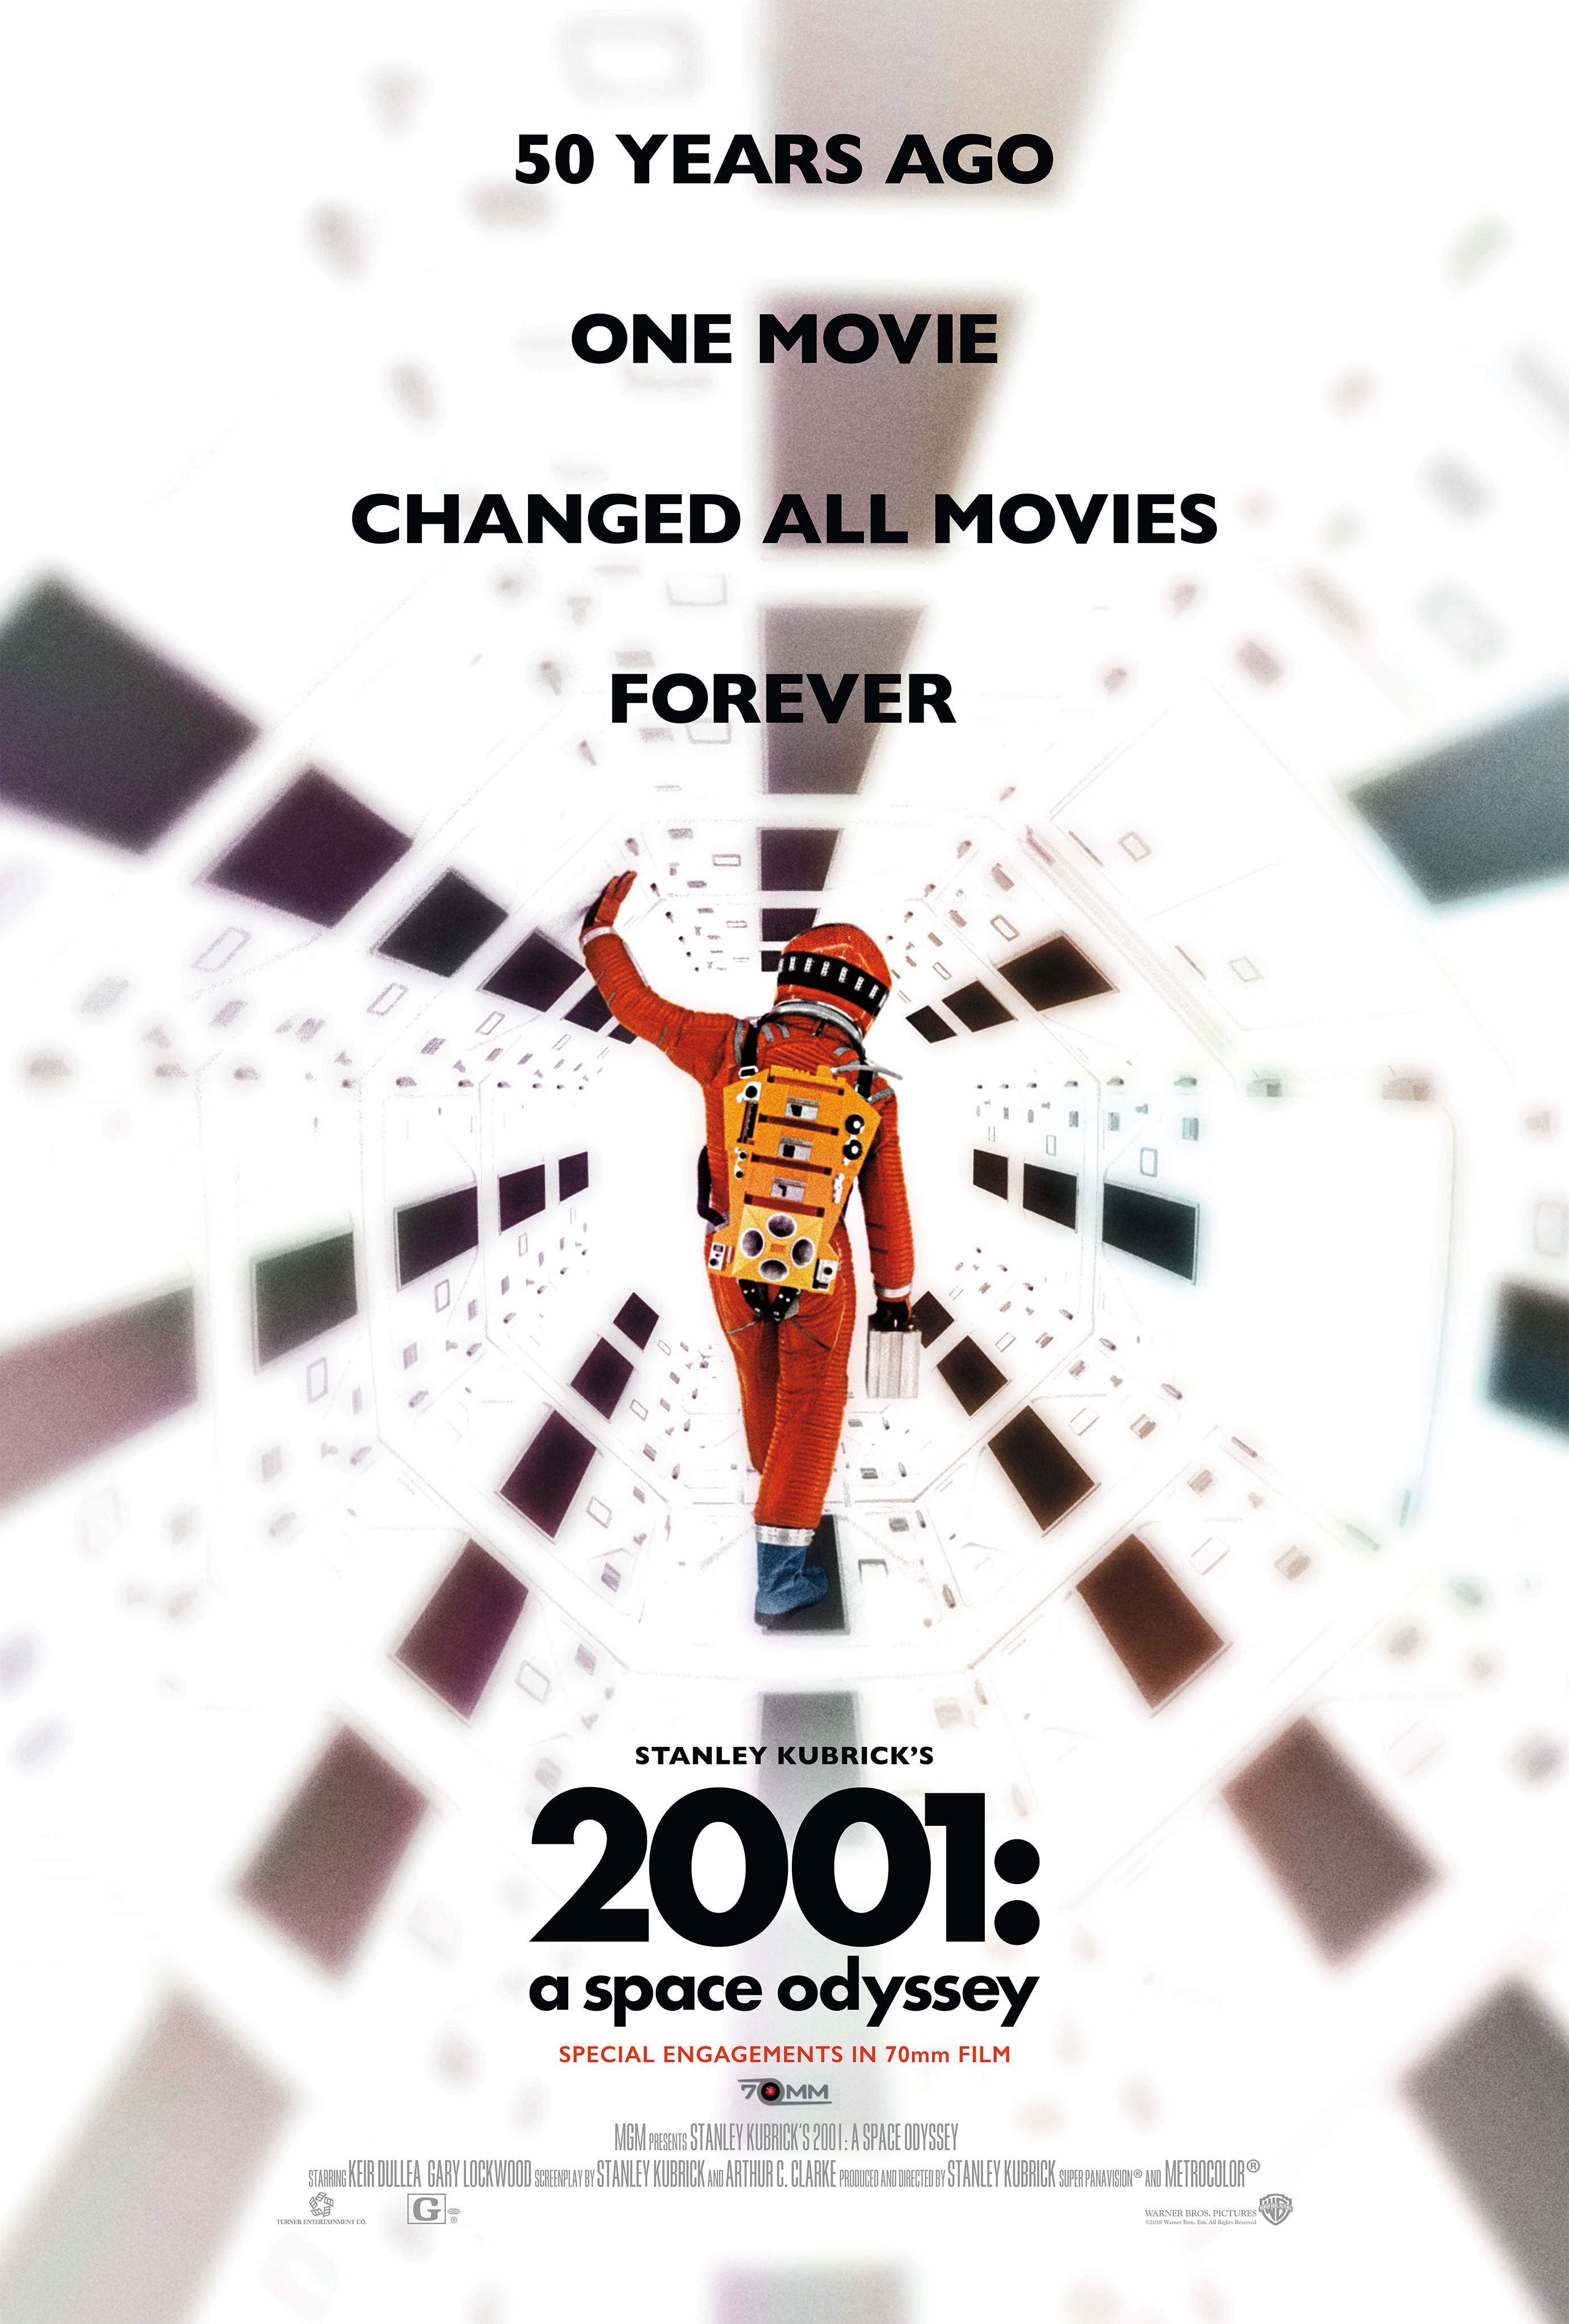 2001: A Space Odyssey 70mm film review Cannes 2018: a magnificent trip